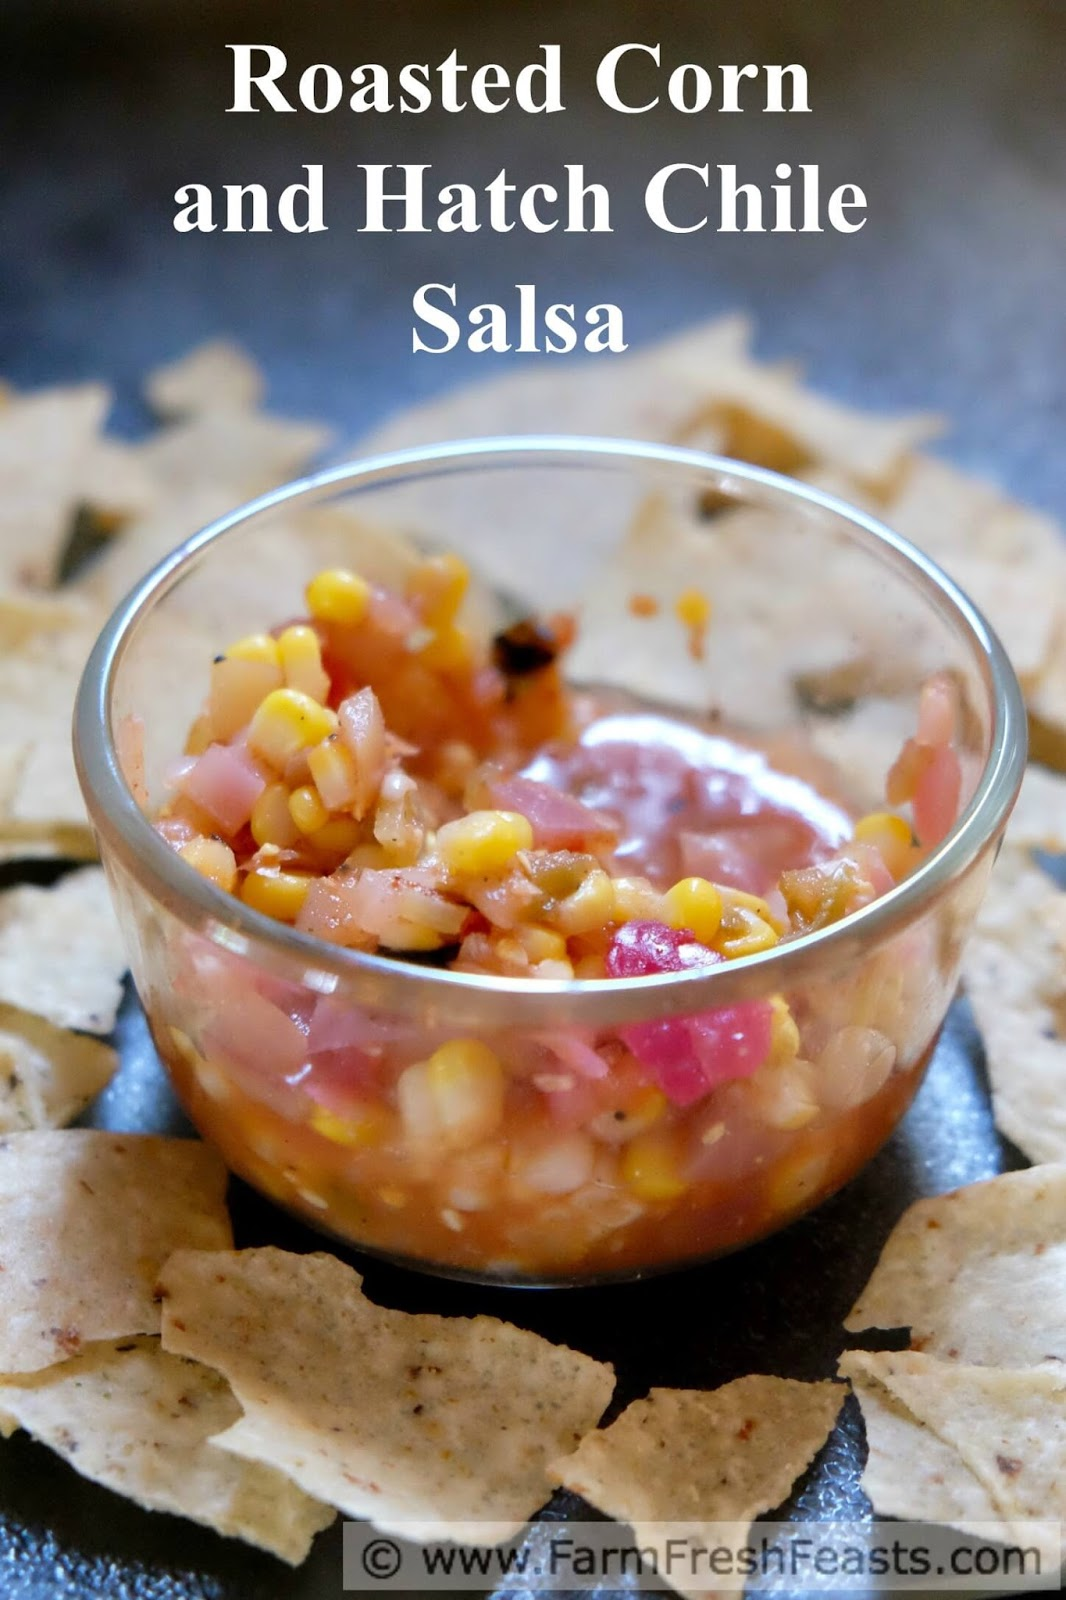 tangy salsa combines seasonal vegetables--corn, tomatoes, and peppers ...